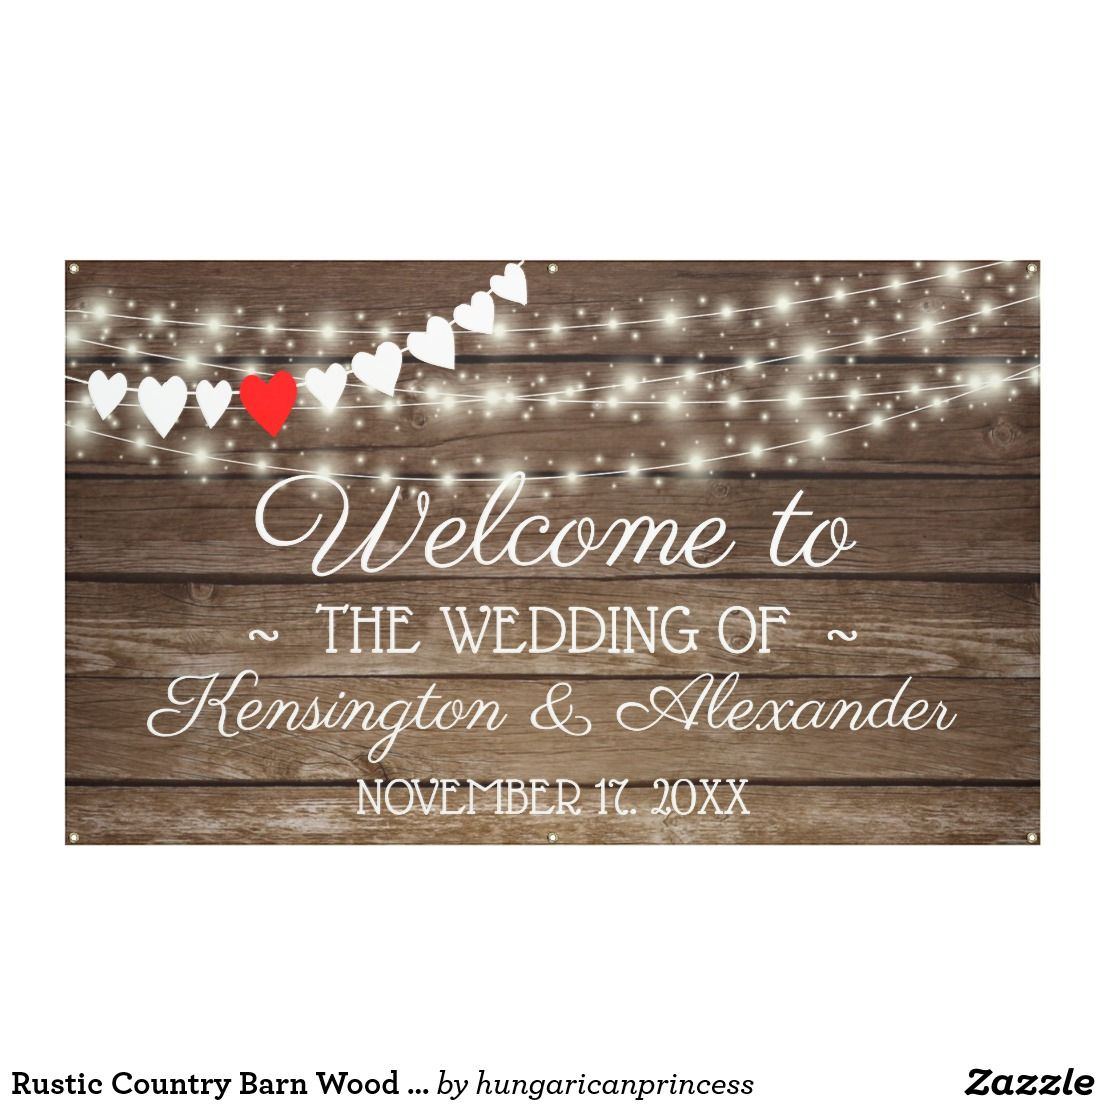 Rustic Country Barn Wood String Of Lights Wedding Banner in